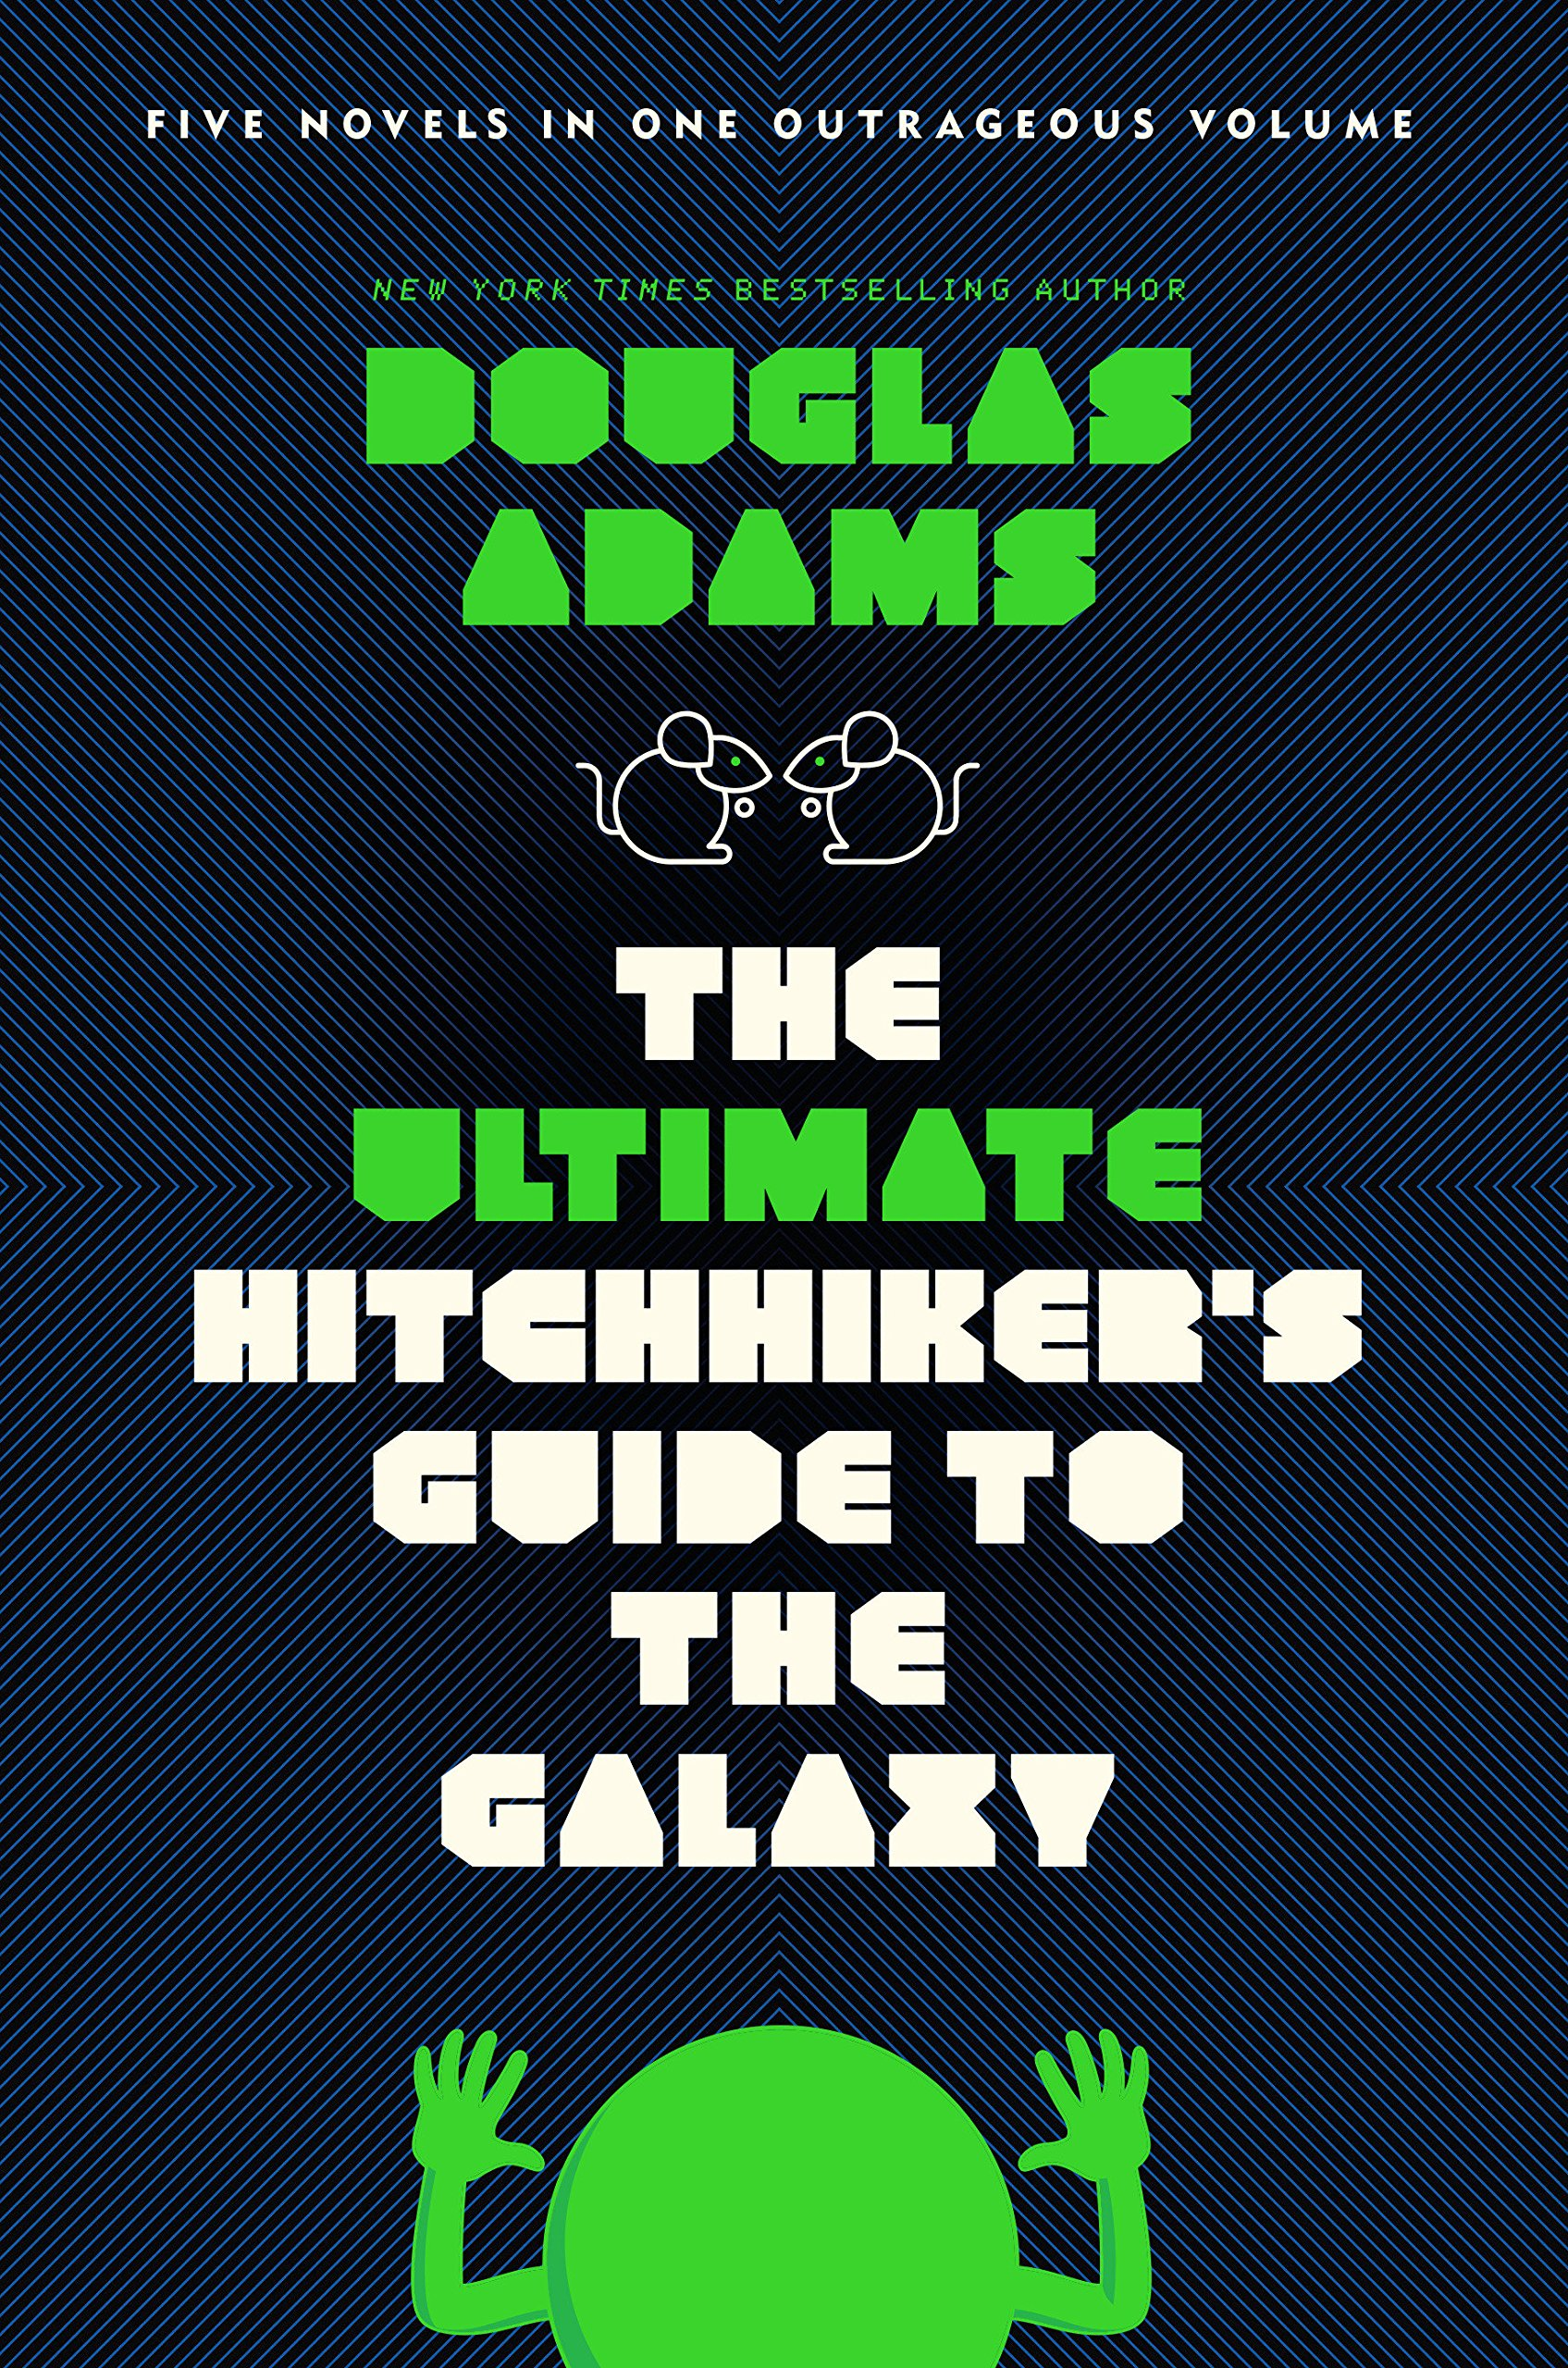 The Ultimate Hitchhiker's Guide to the Galaxy by Del Rey Books